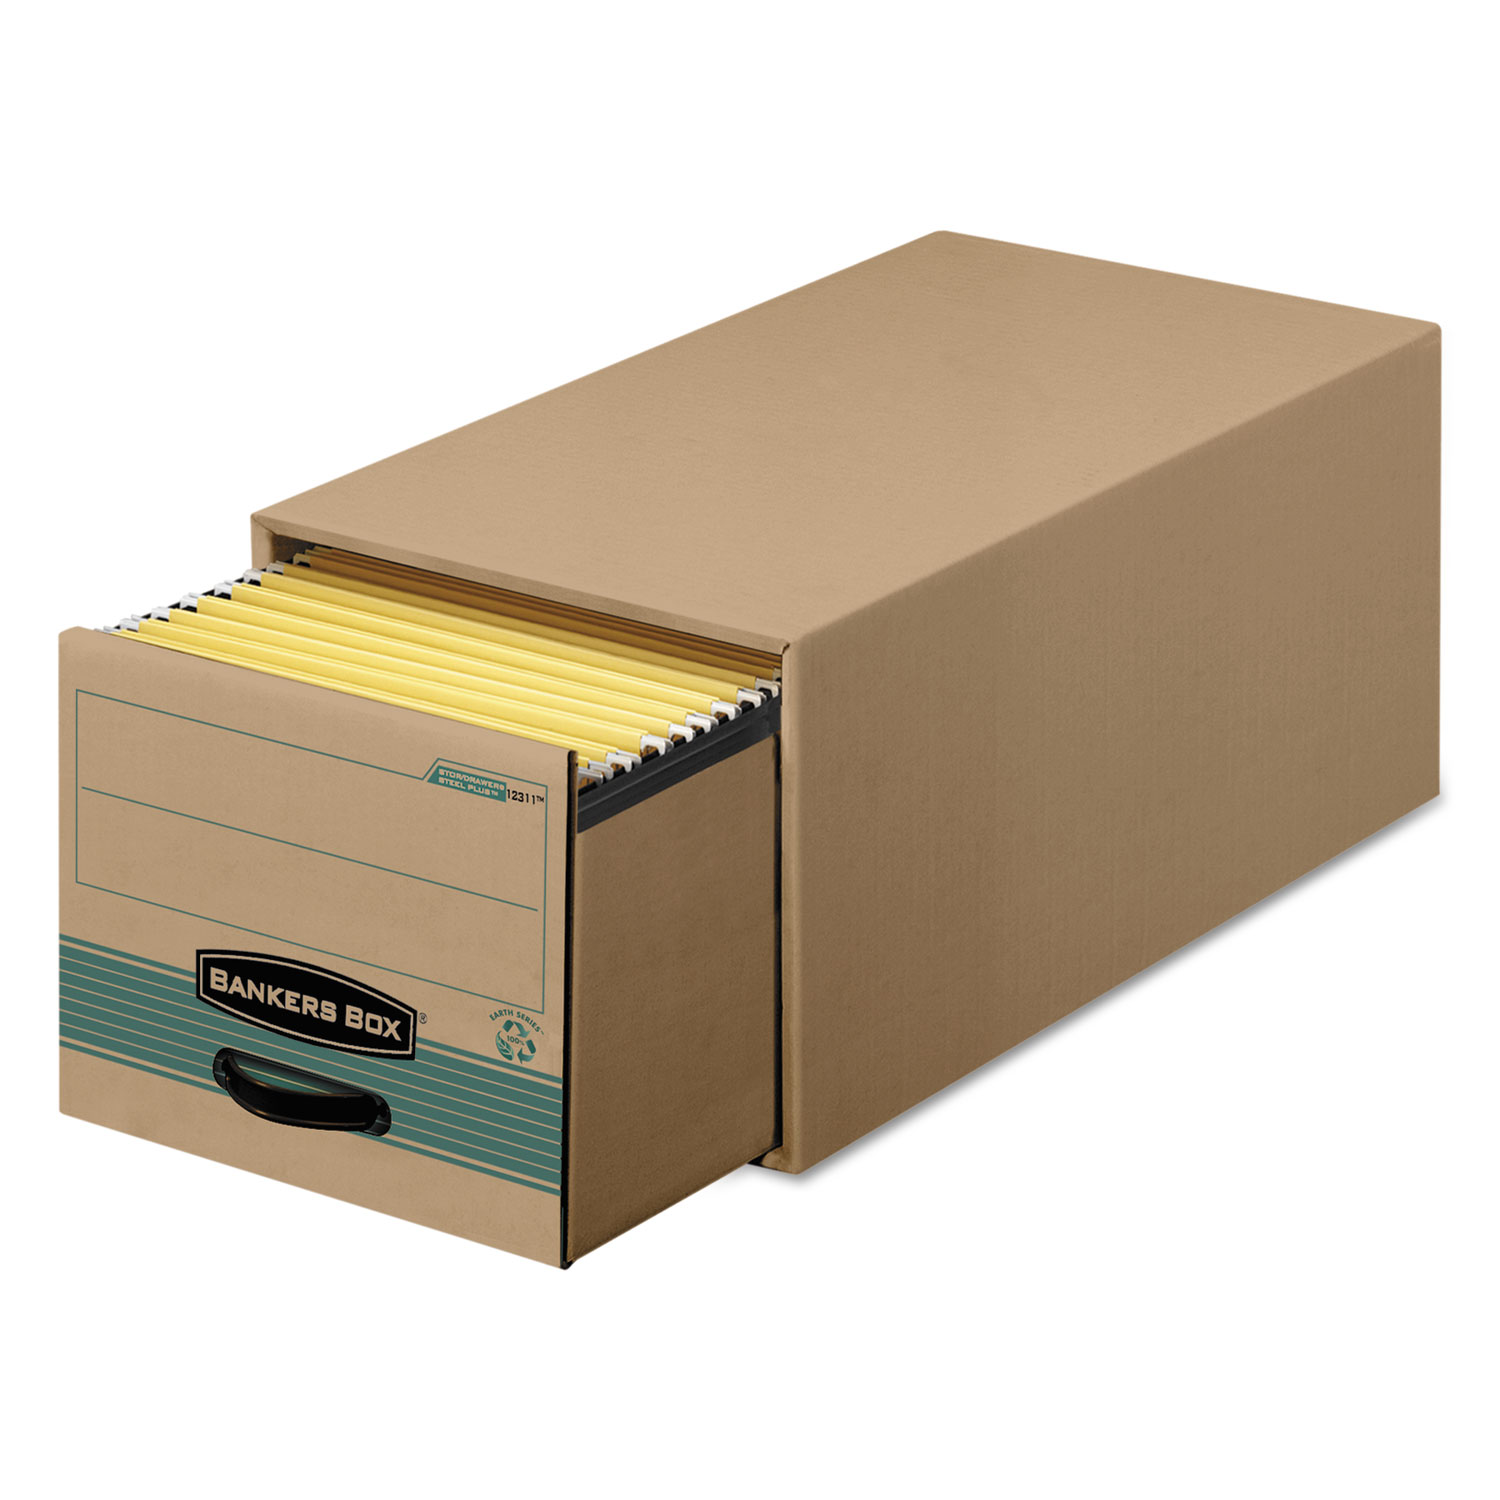 "STOR/DRAWER STEEL PLUS Extra Space-Savings Storage Drawers, Letter Files, 14"" x 25.5"" x 11.5"", Kraft/Green, 6/Carton"